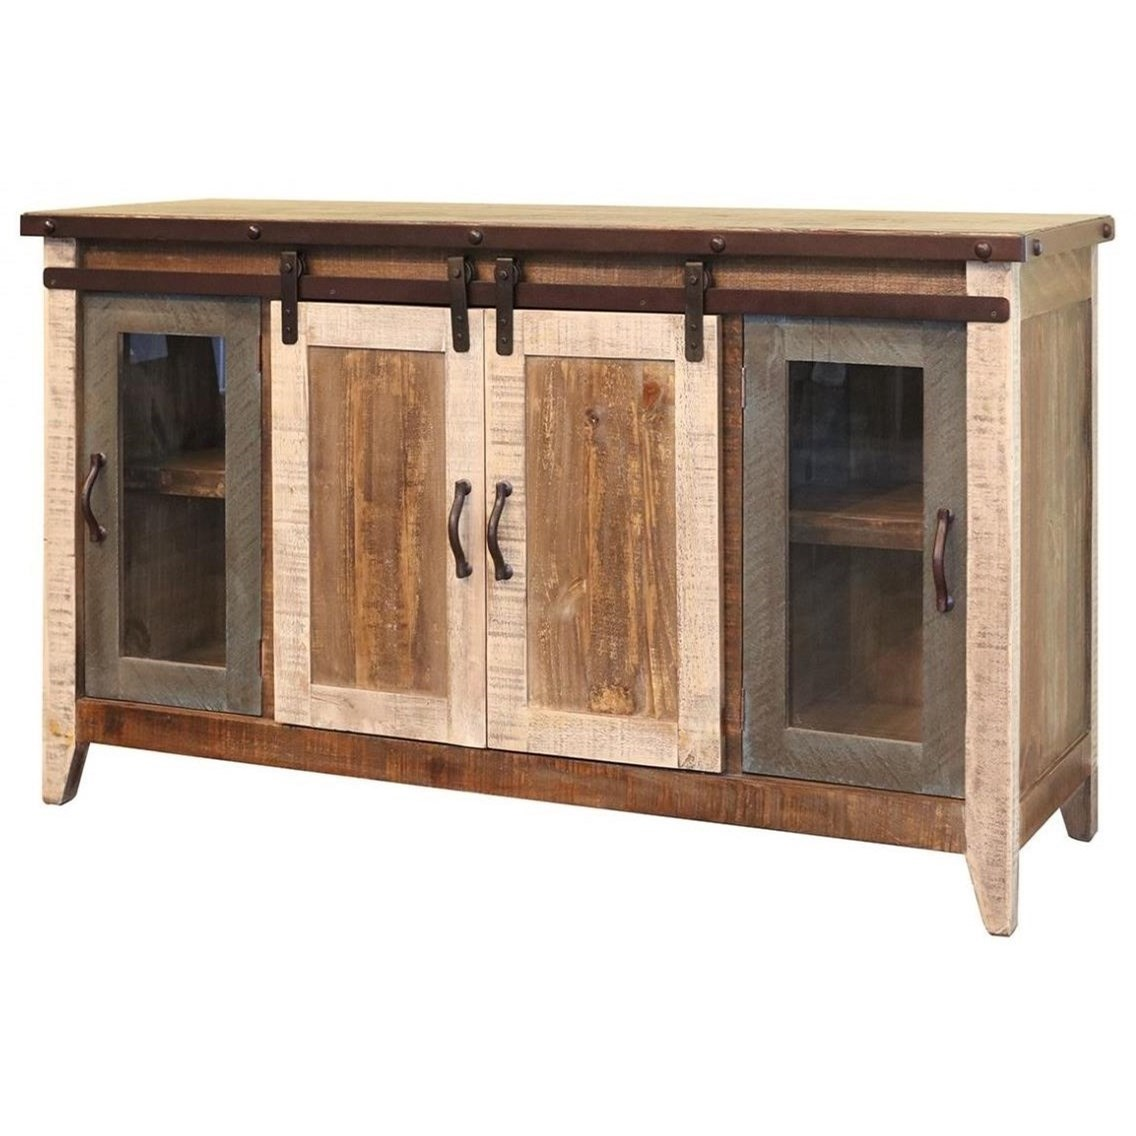 """900 Antique 60"""" TV Stand with Sliding Doors by International Furniture Direct at Furniture Superstore - Rochester, MN"""